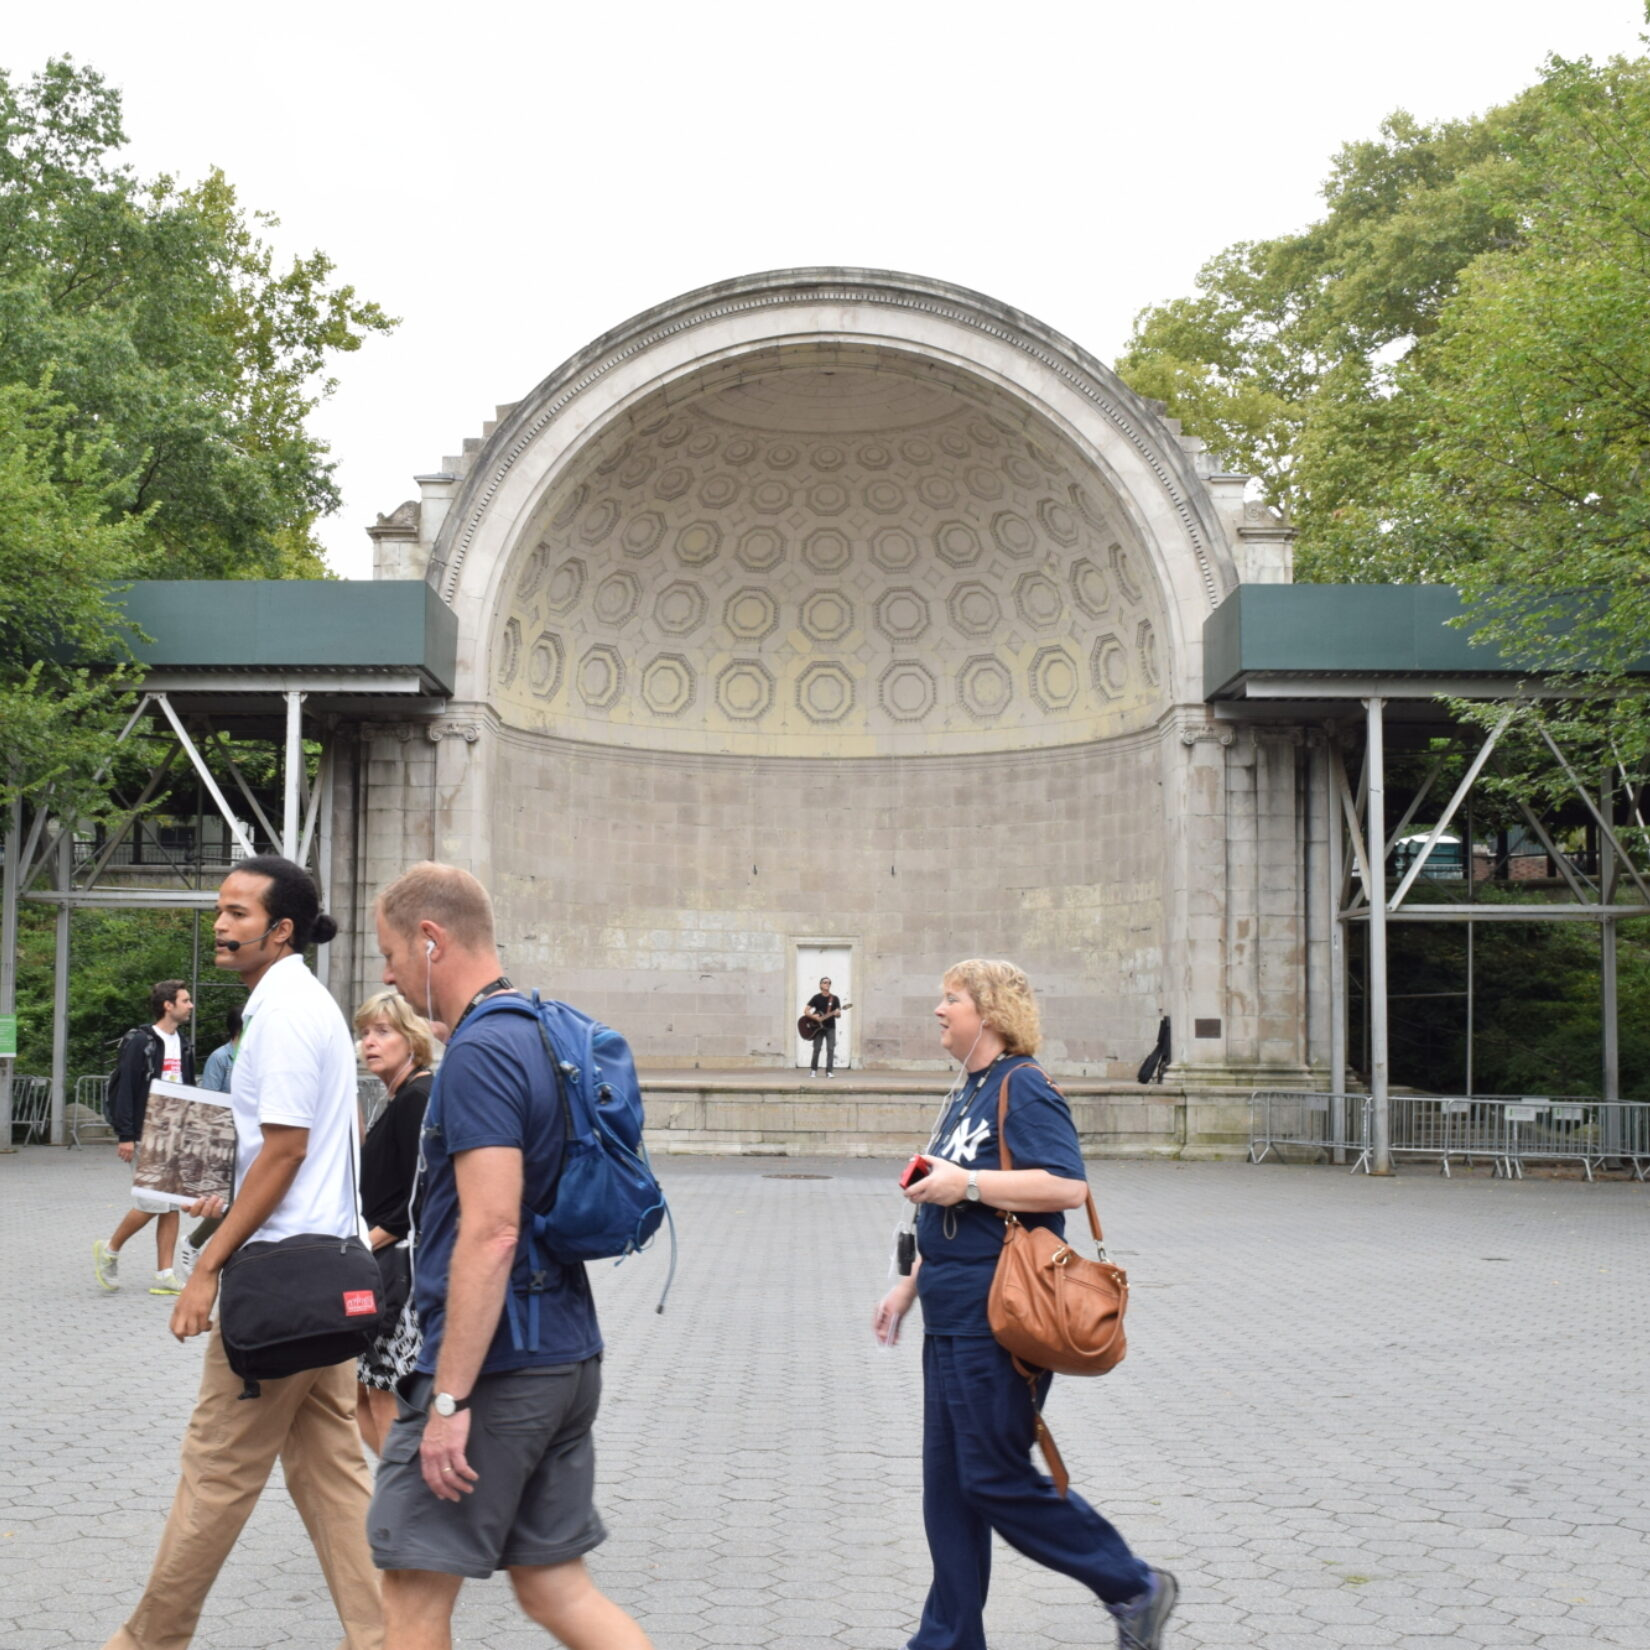 Park-goers pass a lone guitarist testing the acoustics of the bandshell.